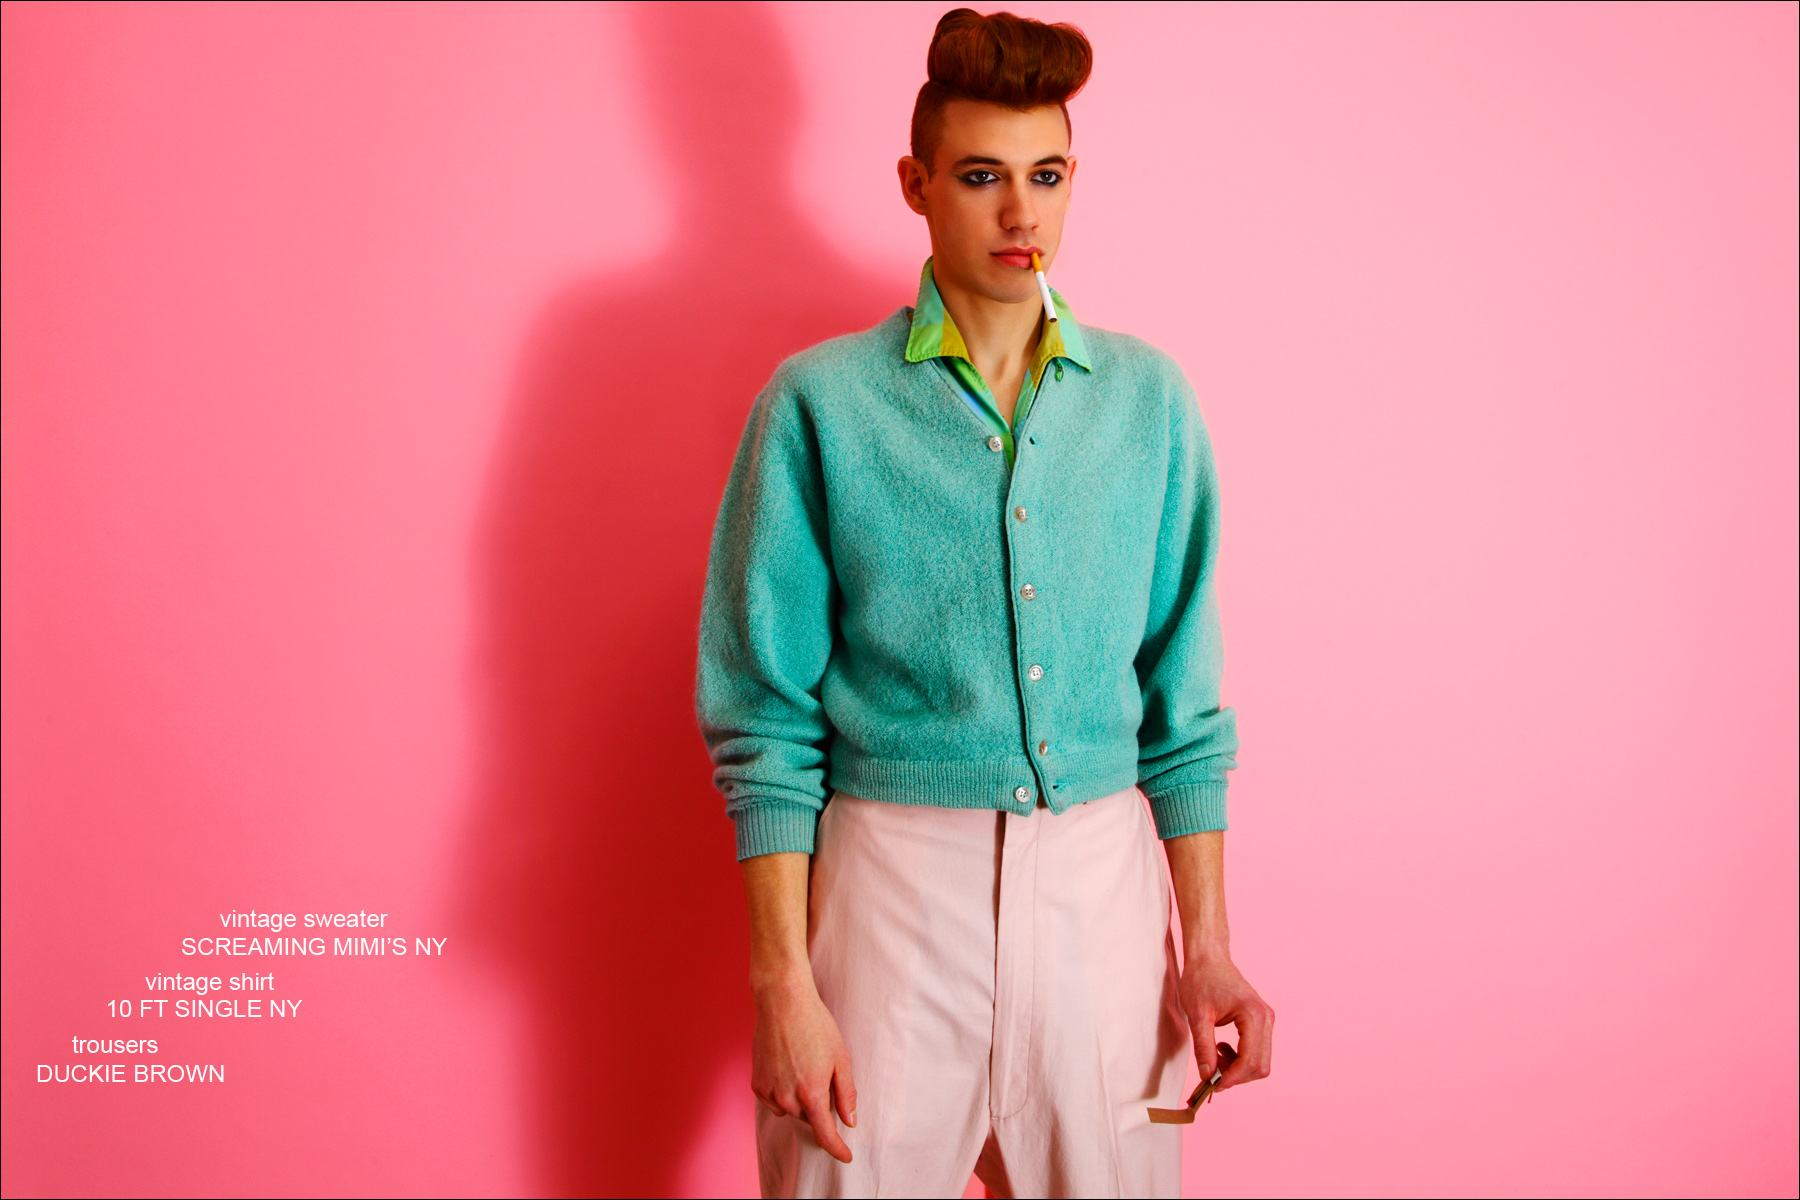 Lyle Lodwick wears a vintage shirt and sweater, and trousers by Duckie Brown. Photographed by Alexander Thompson for Ponyboy magazine NY.